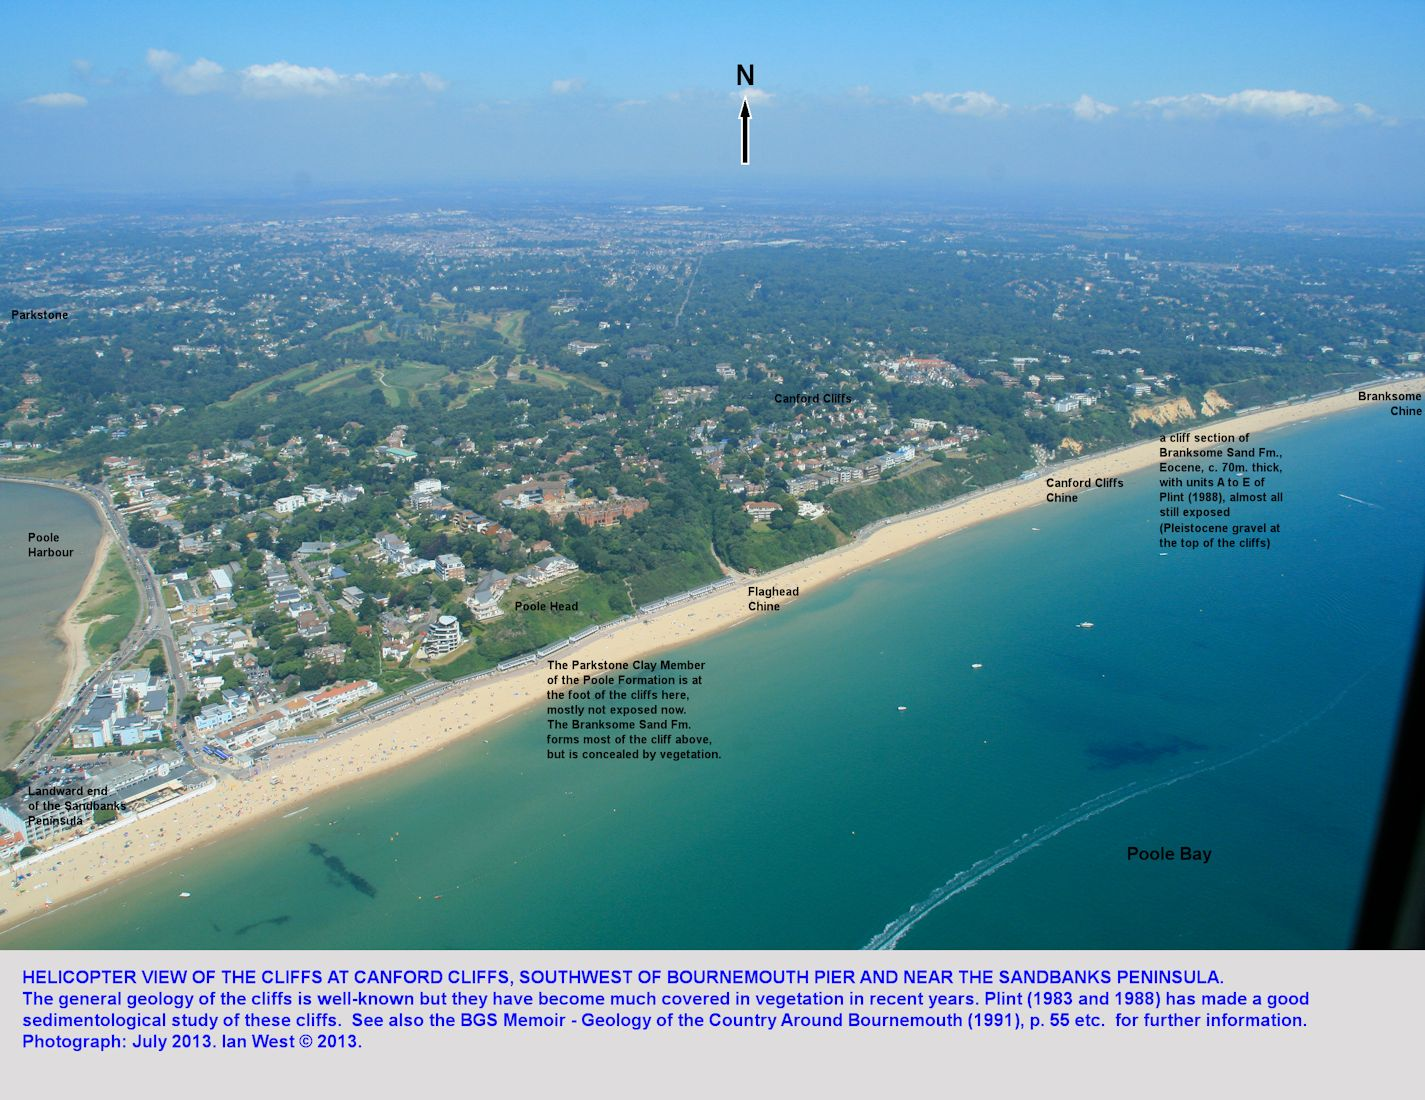 Limited cliff exposures of the Branksome Sand Formation at Canford Cliffs, west of Bournemouth, Dorset, helicopter view, 2013